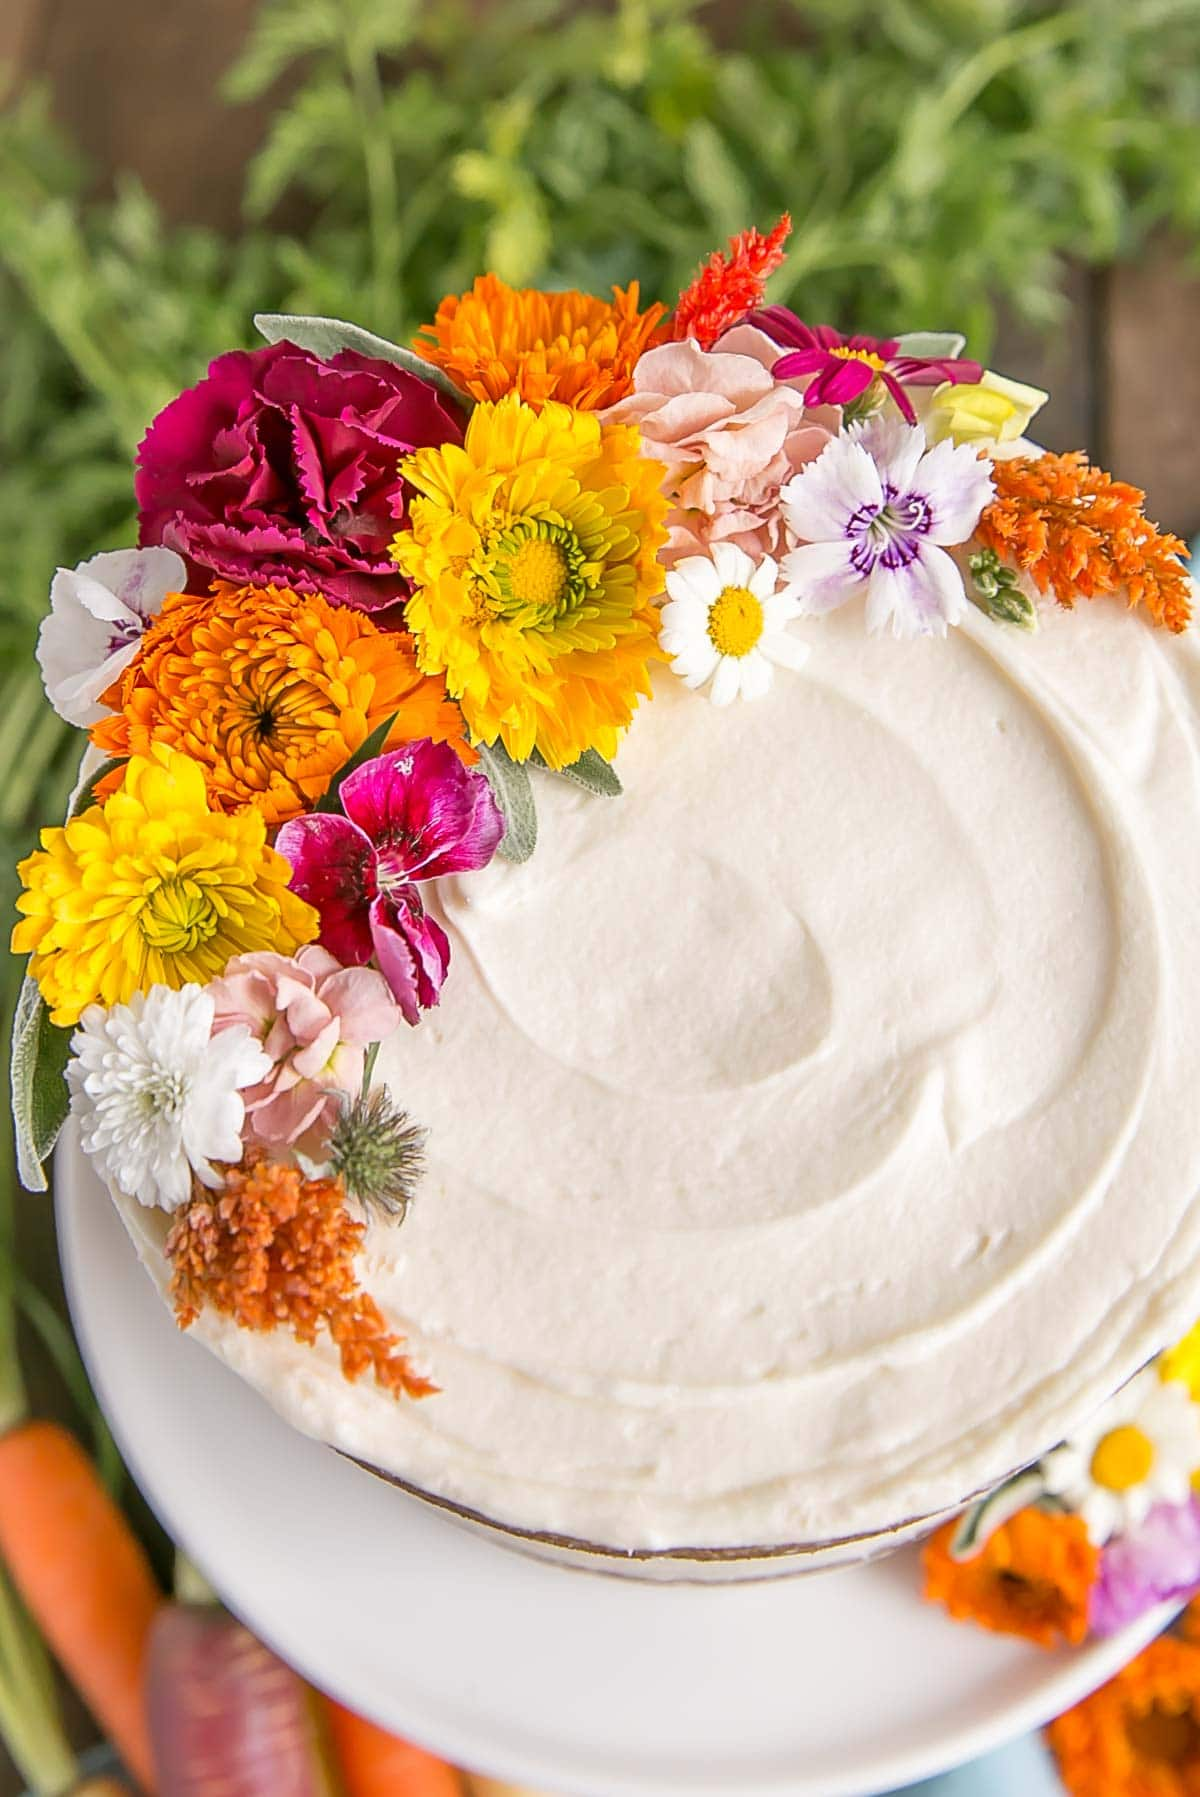 Close up of edible flowers on carrot cake